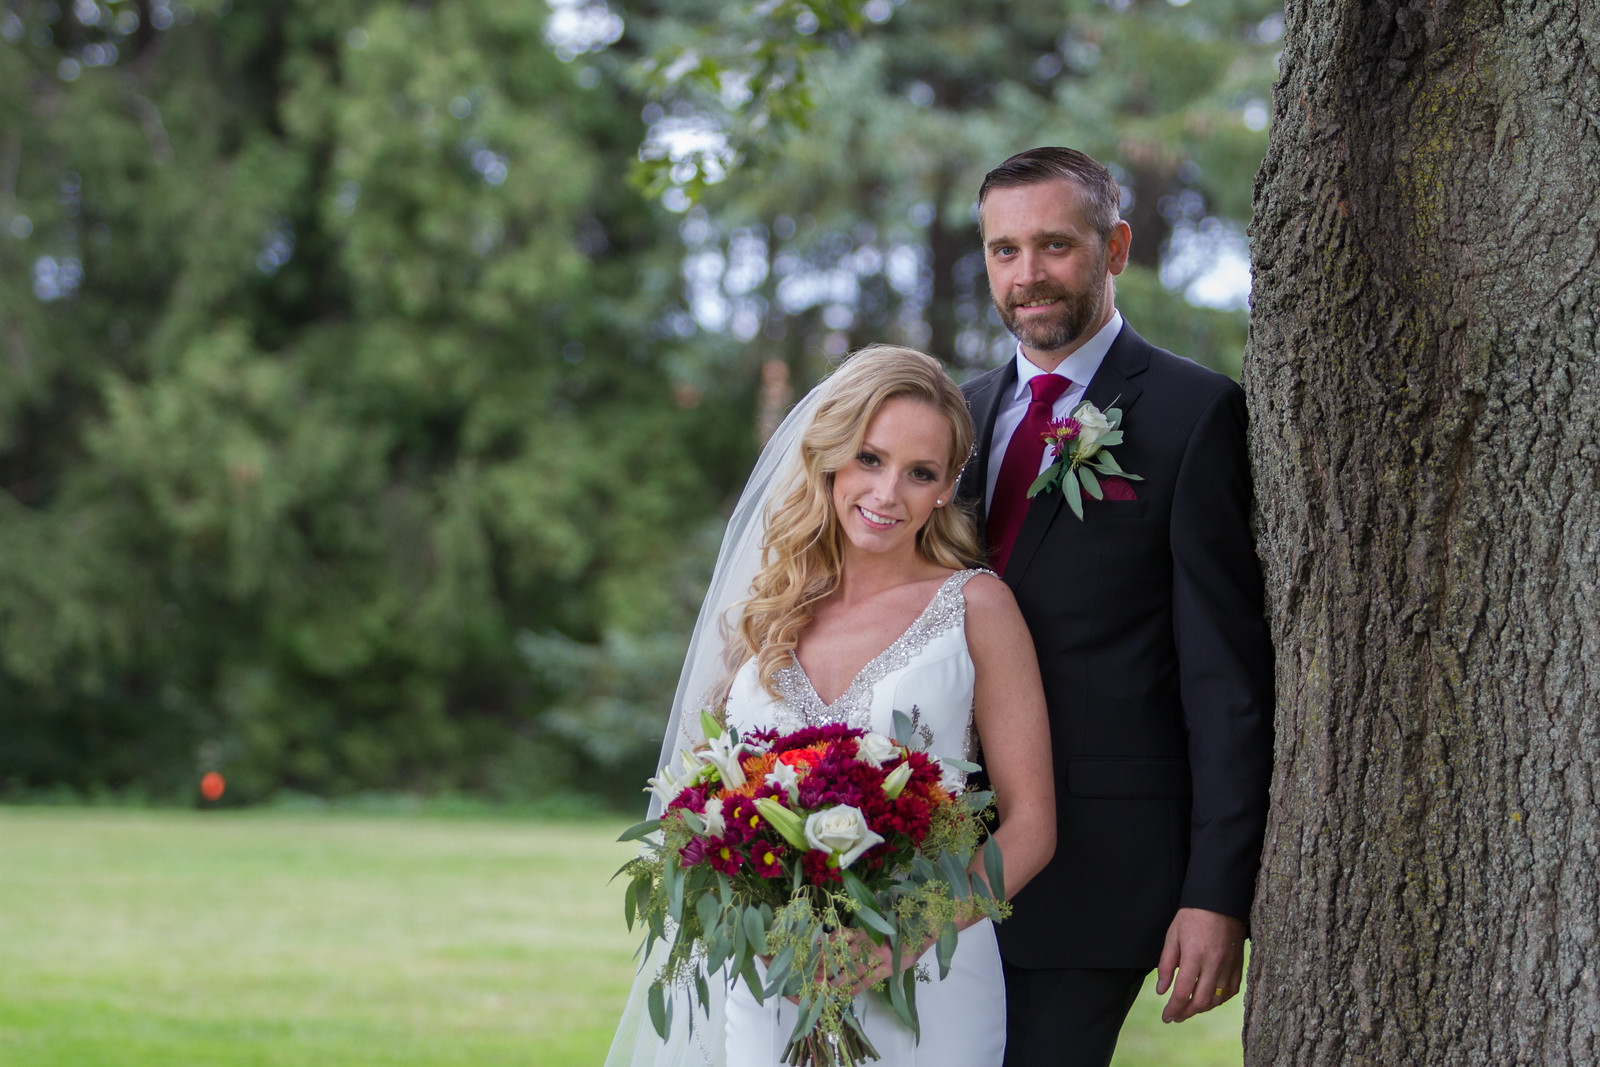 Mary & James at Wilmot Mountain (September 29, 2018)